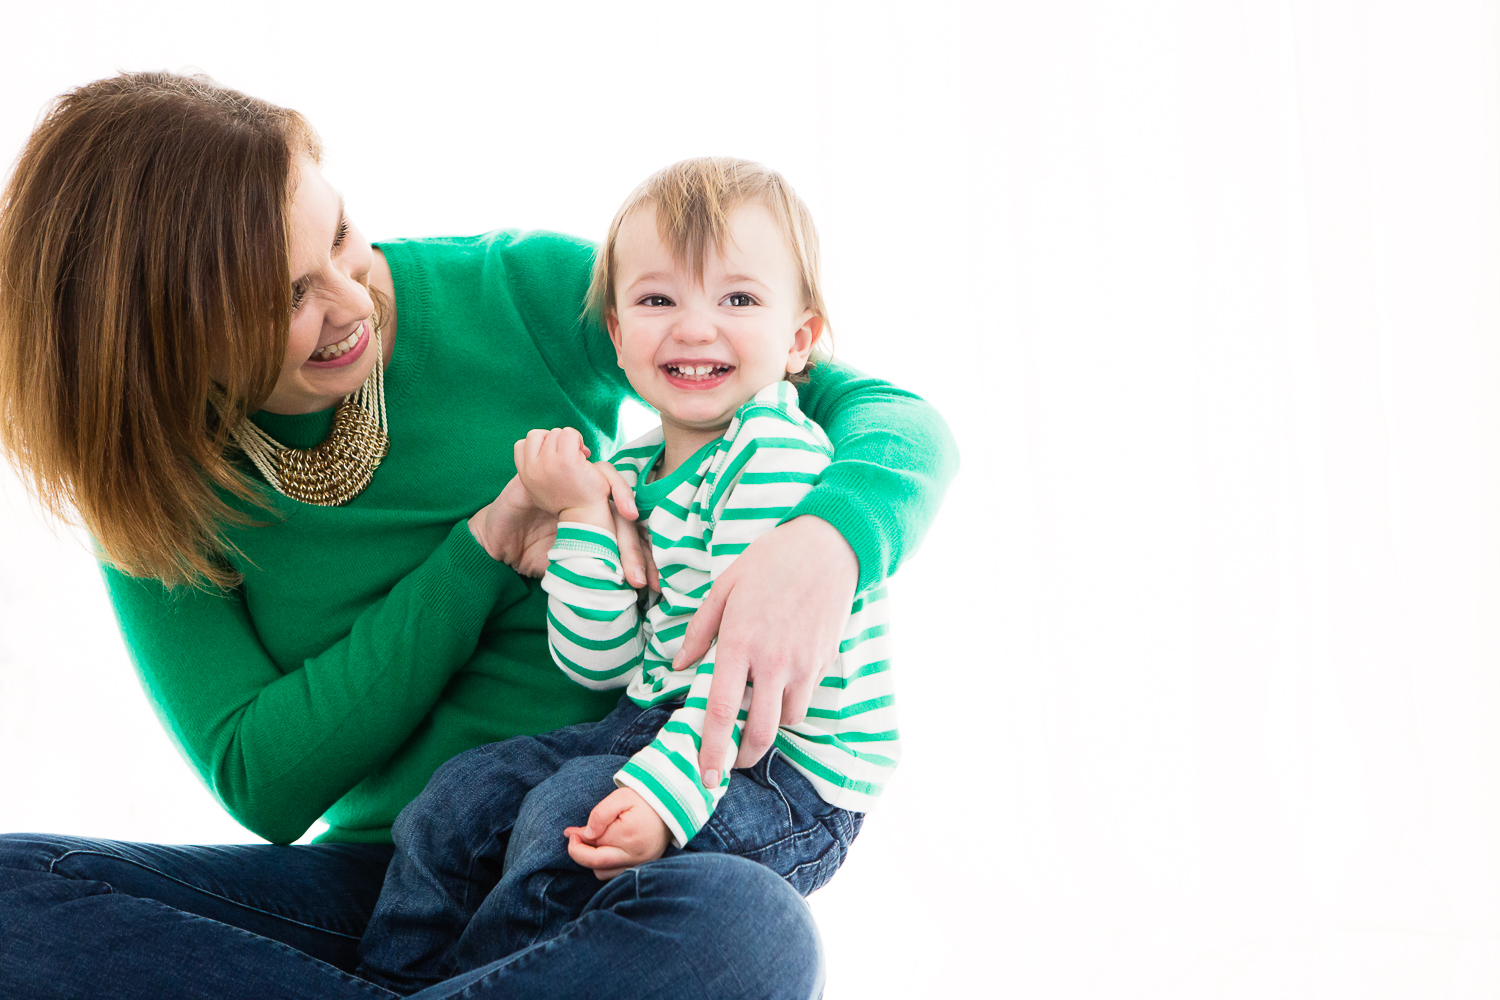 Photo on white backdrop of a woman in green holding a little boy in a green and white striped shirt